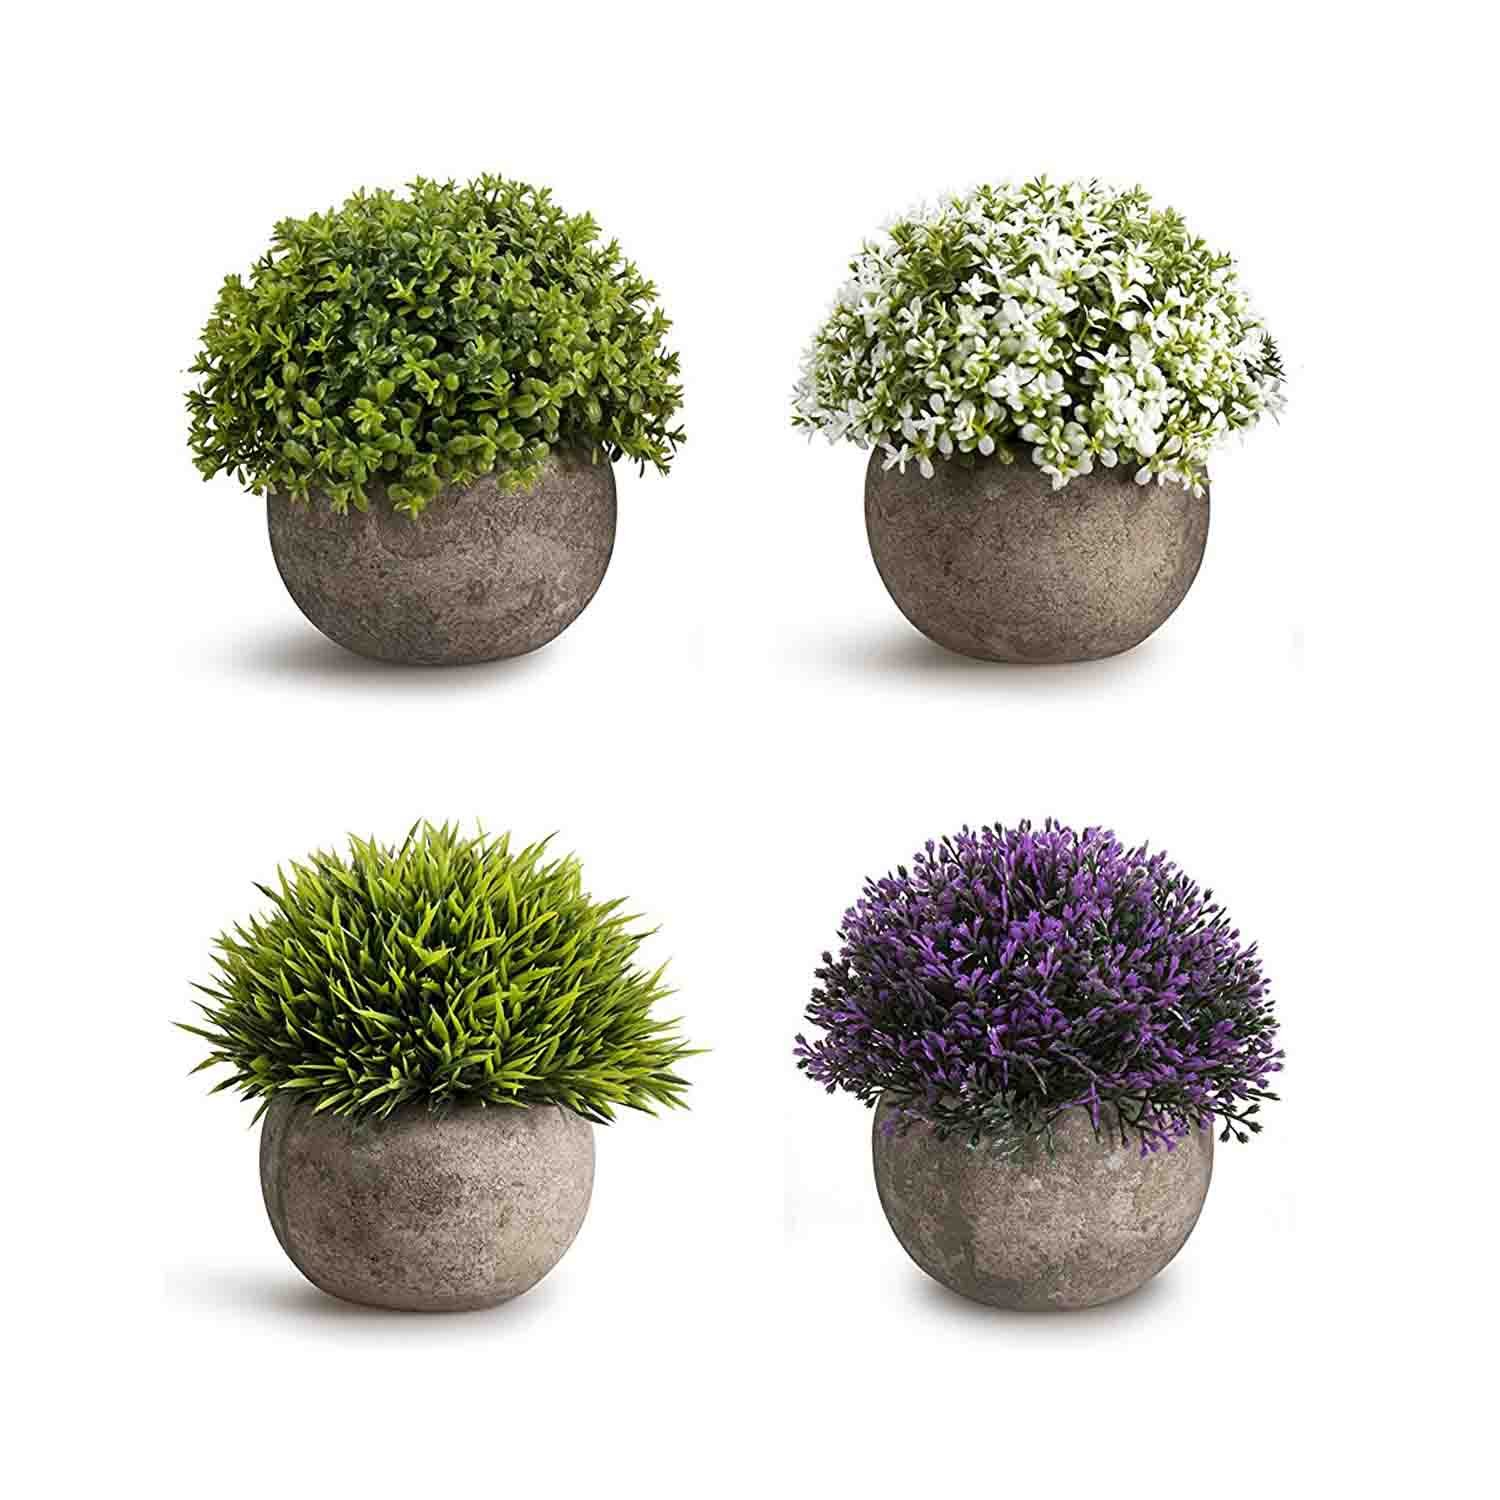 CEWOR 4 Pack Artificial Mini Plants Plastic Mini Plants Topiary Shrubs Fake Plants for Bathroom,House Decorations (Multicolored) by CEWOR